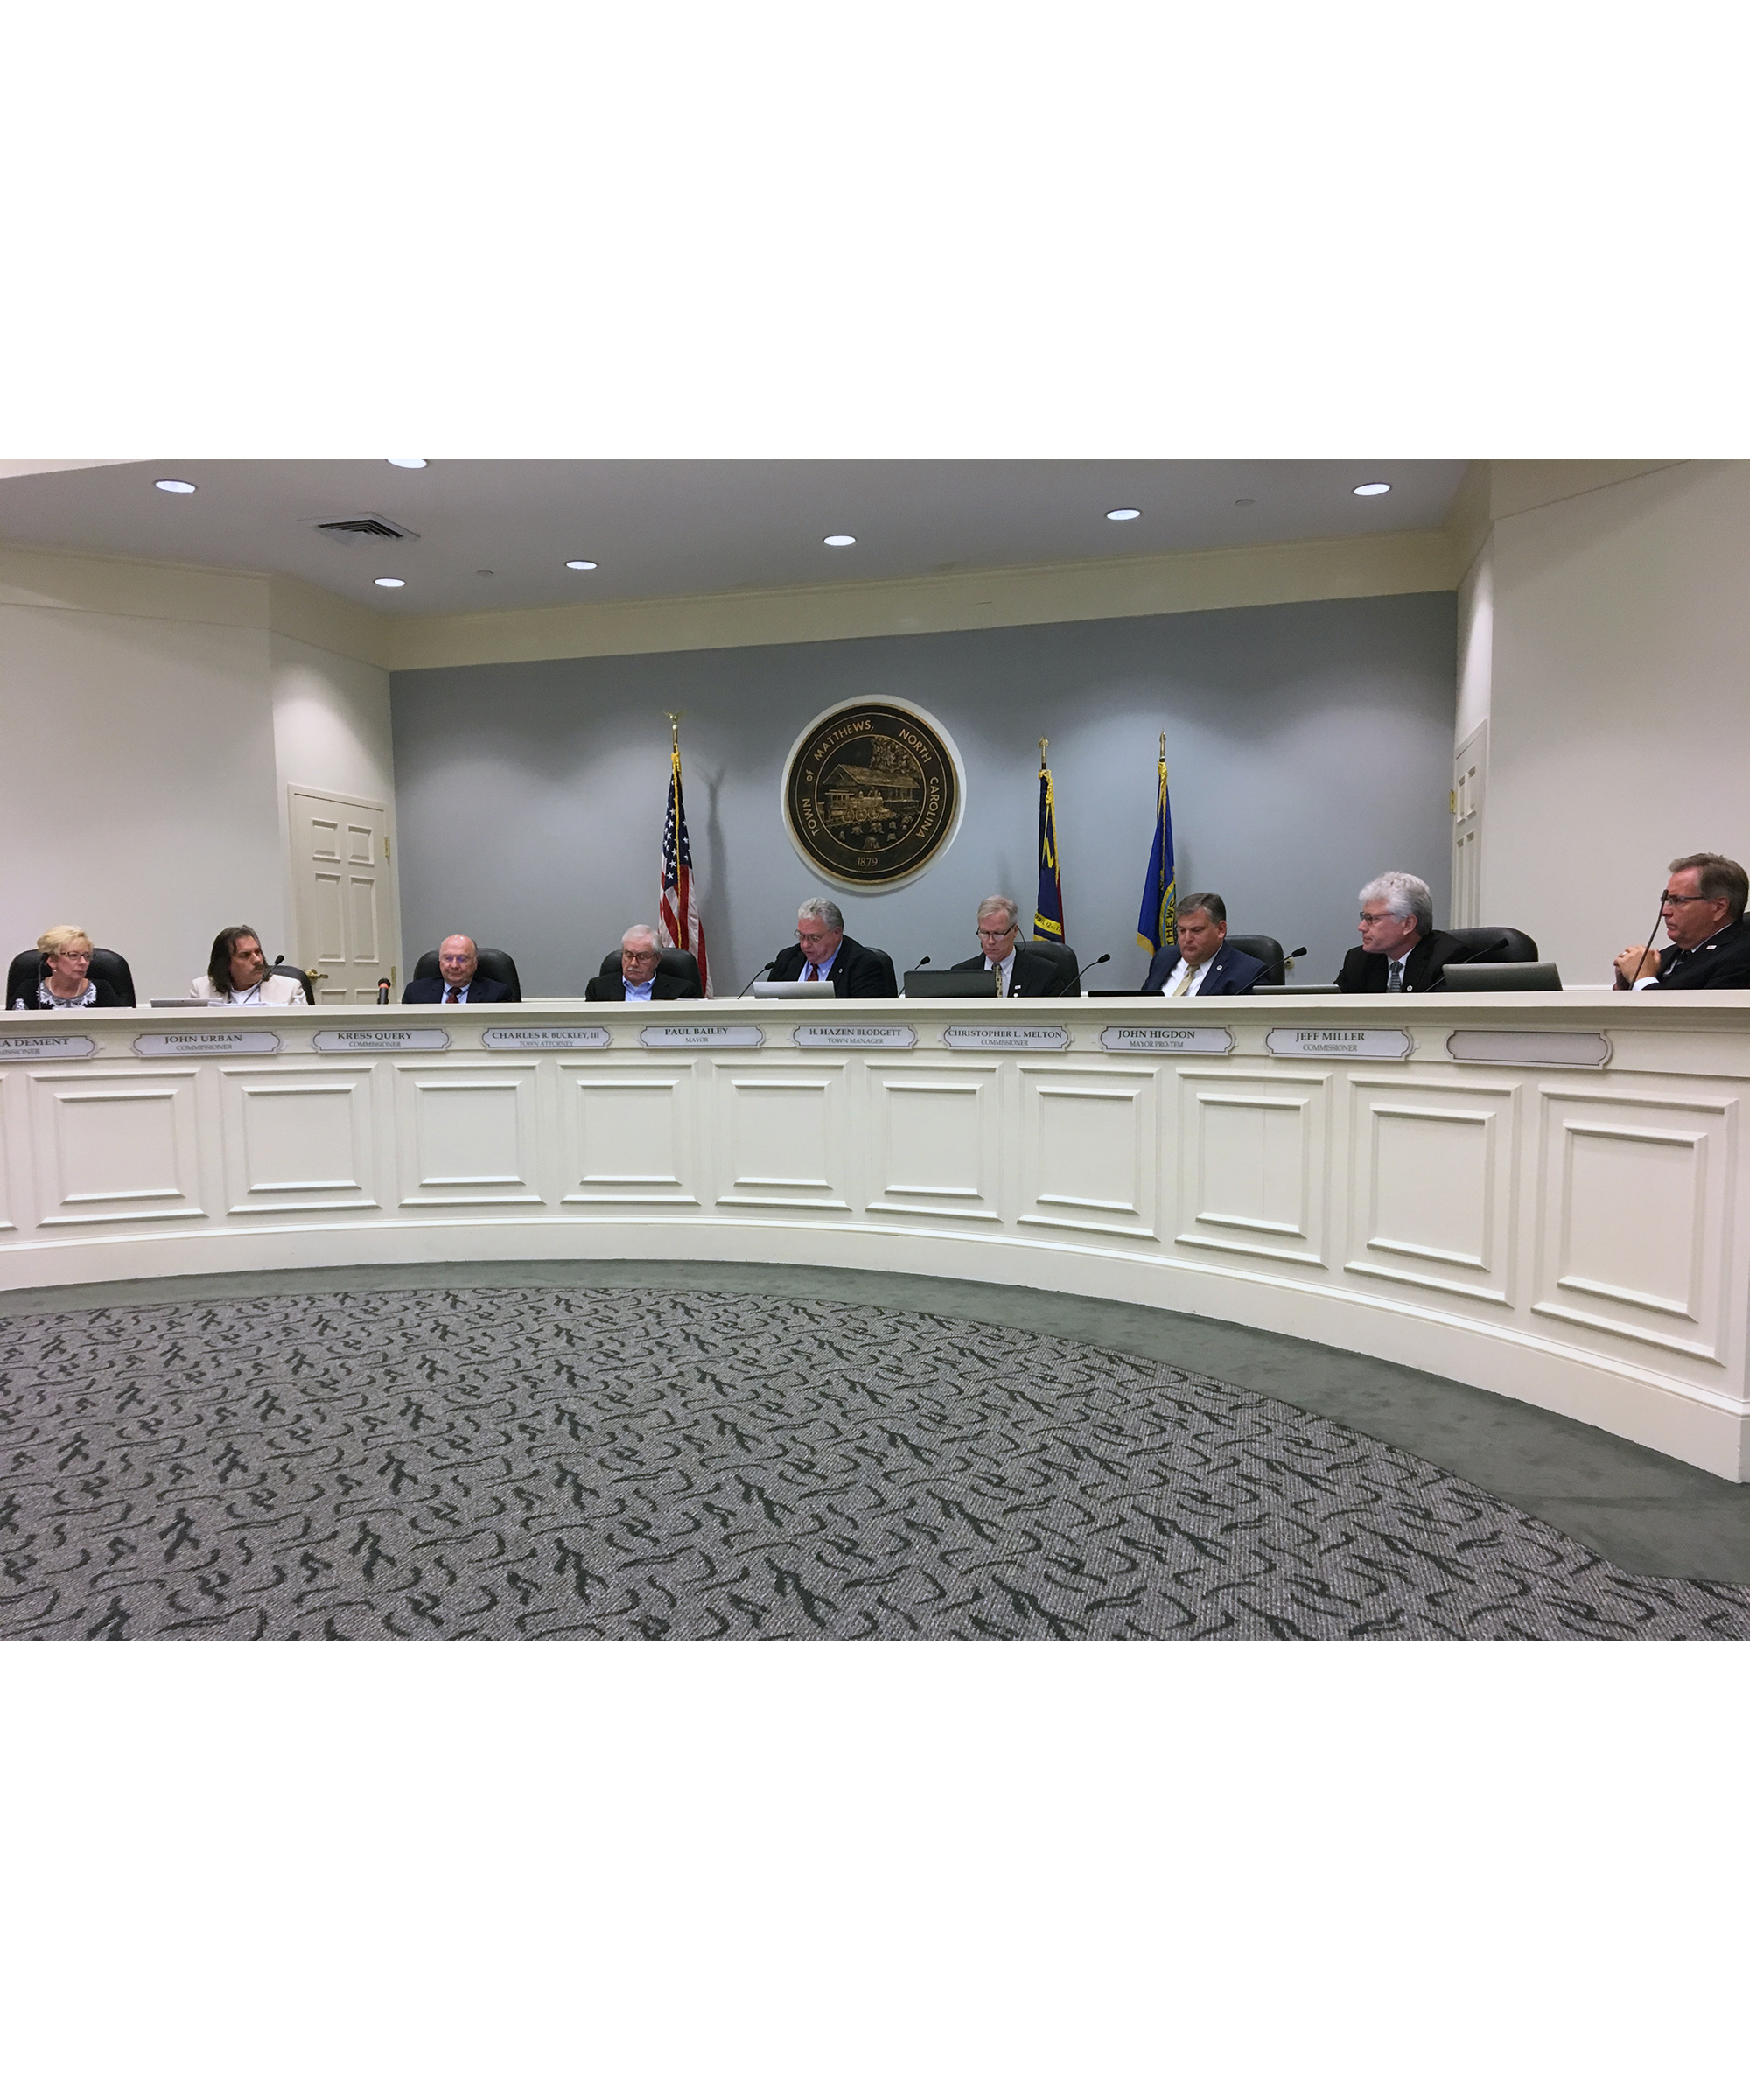 "News About Town: The Planning Conference for the Board of Commissioners starts Friday. Pursuant to NC open meeting laws, the meeting is open to the public but there will be no portion for public comment. Items of note include: Properties of Significance with Existing ""By Right"" Zoning; Residential Construction and Overcrowded Schools; 4-Year Terms for Mayor and Board of Commissioners; and Hiring a Lobbyist. The full information packet can be found here. -"